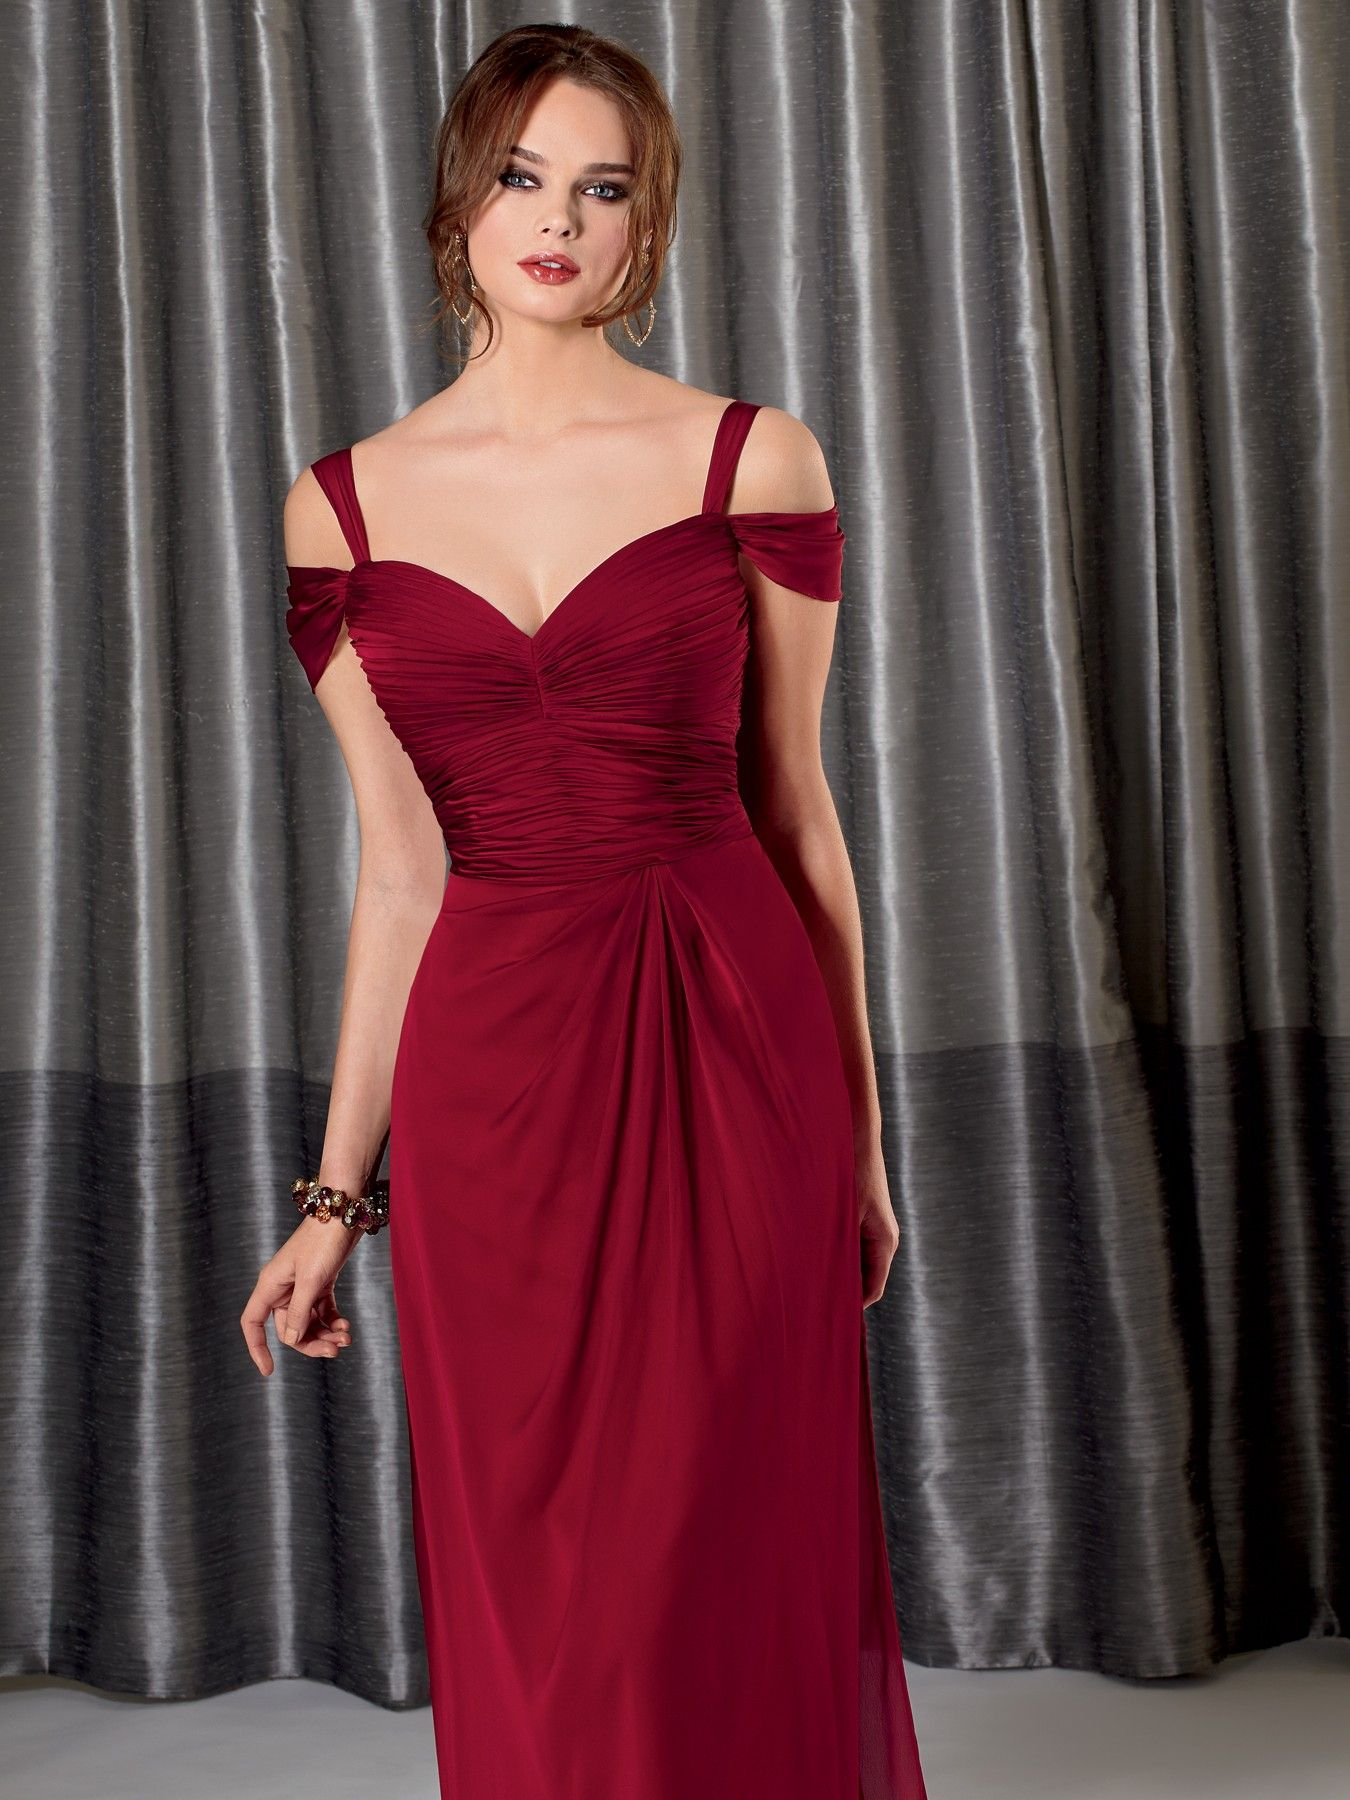 Jordan bridesmaid dress in ruby its beautiful and affordable jordan bridesmaid dress in ruby its beautiful and affordable ombrellifo Image collections